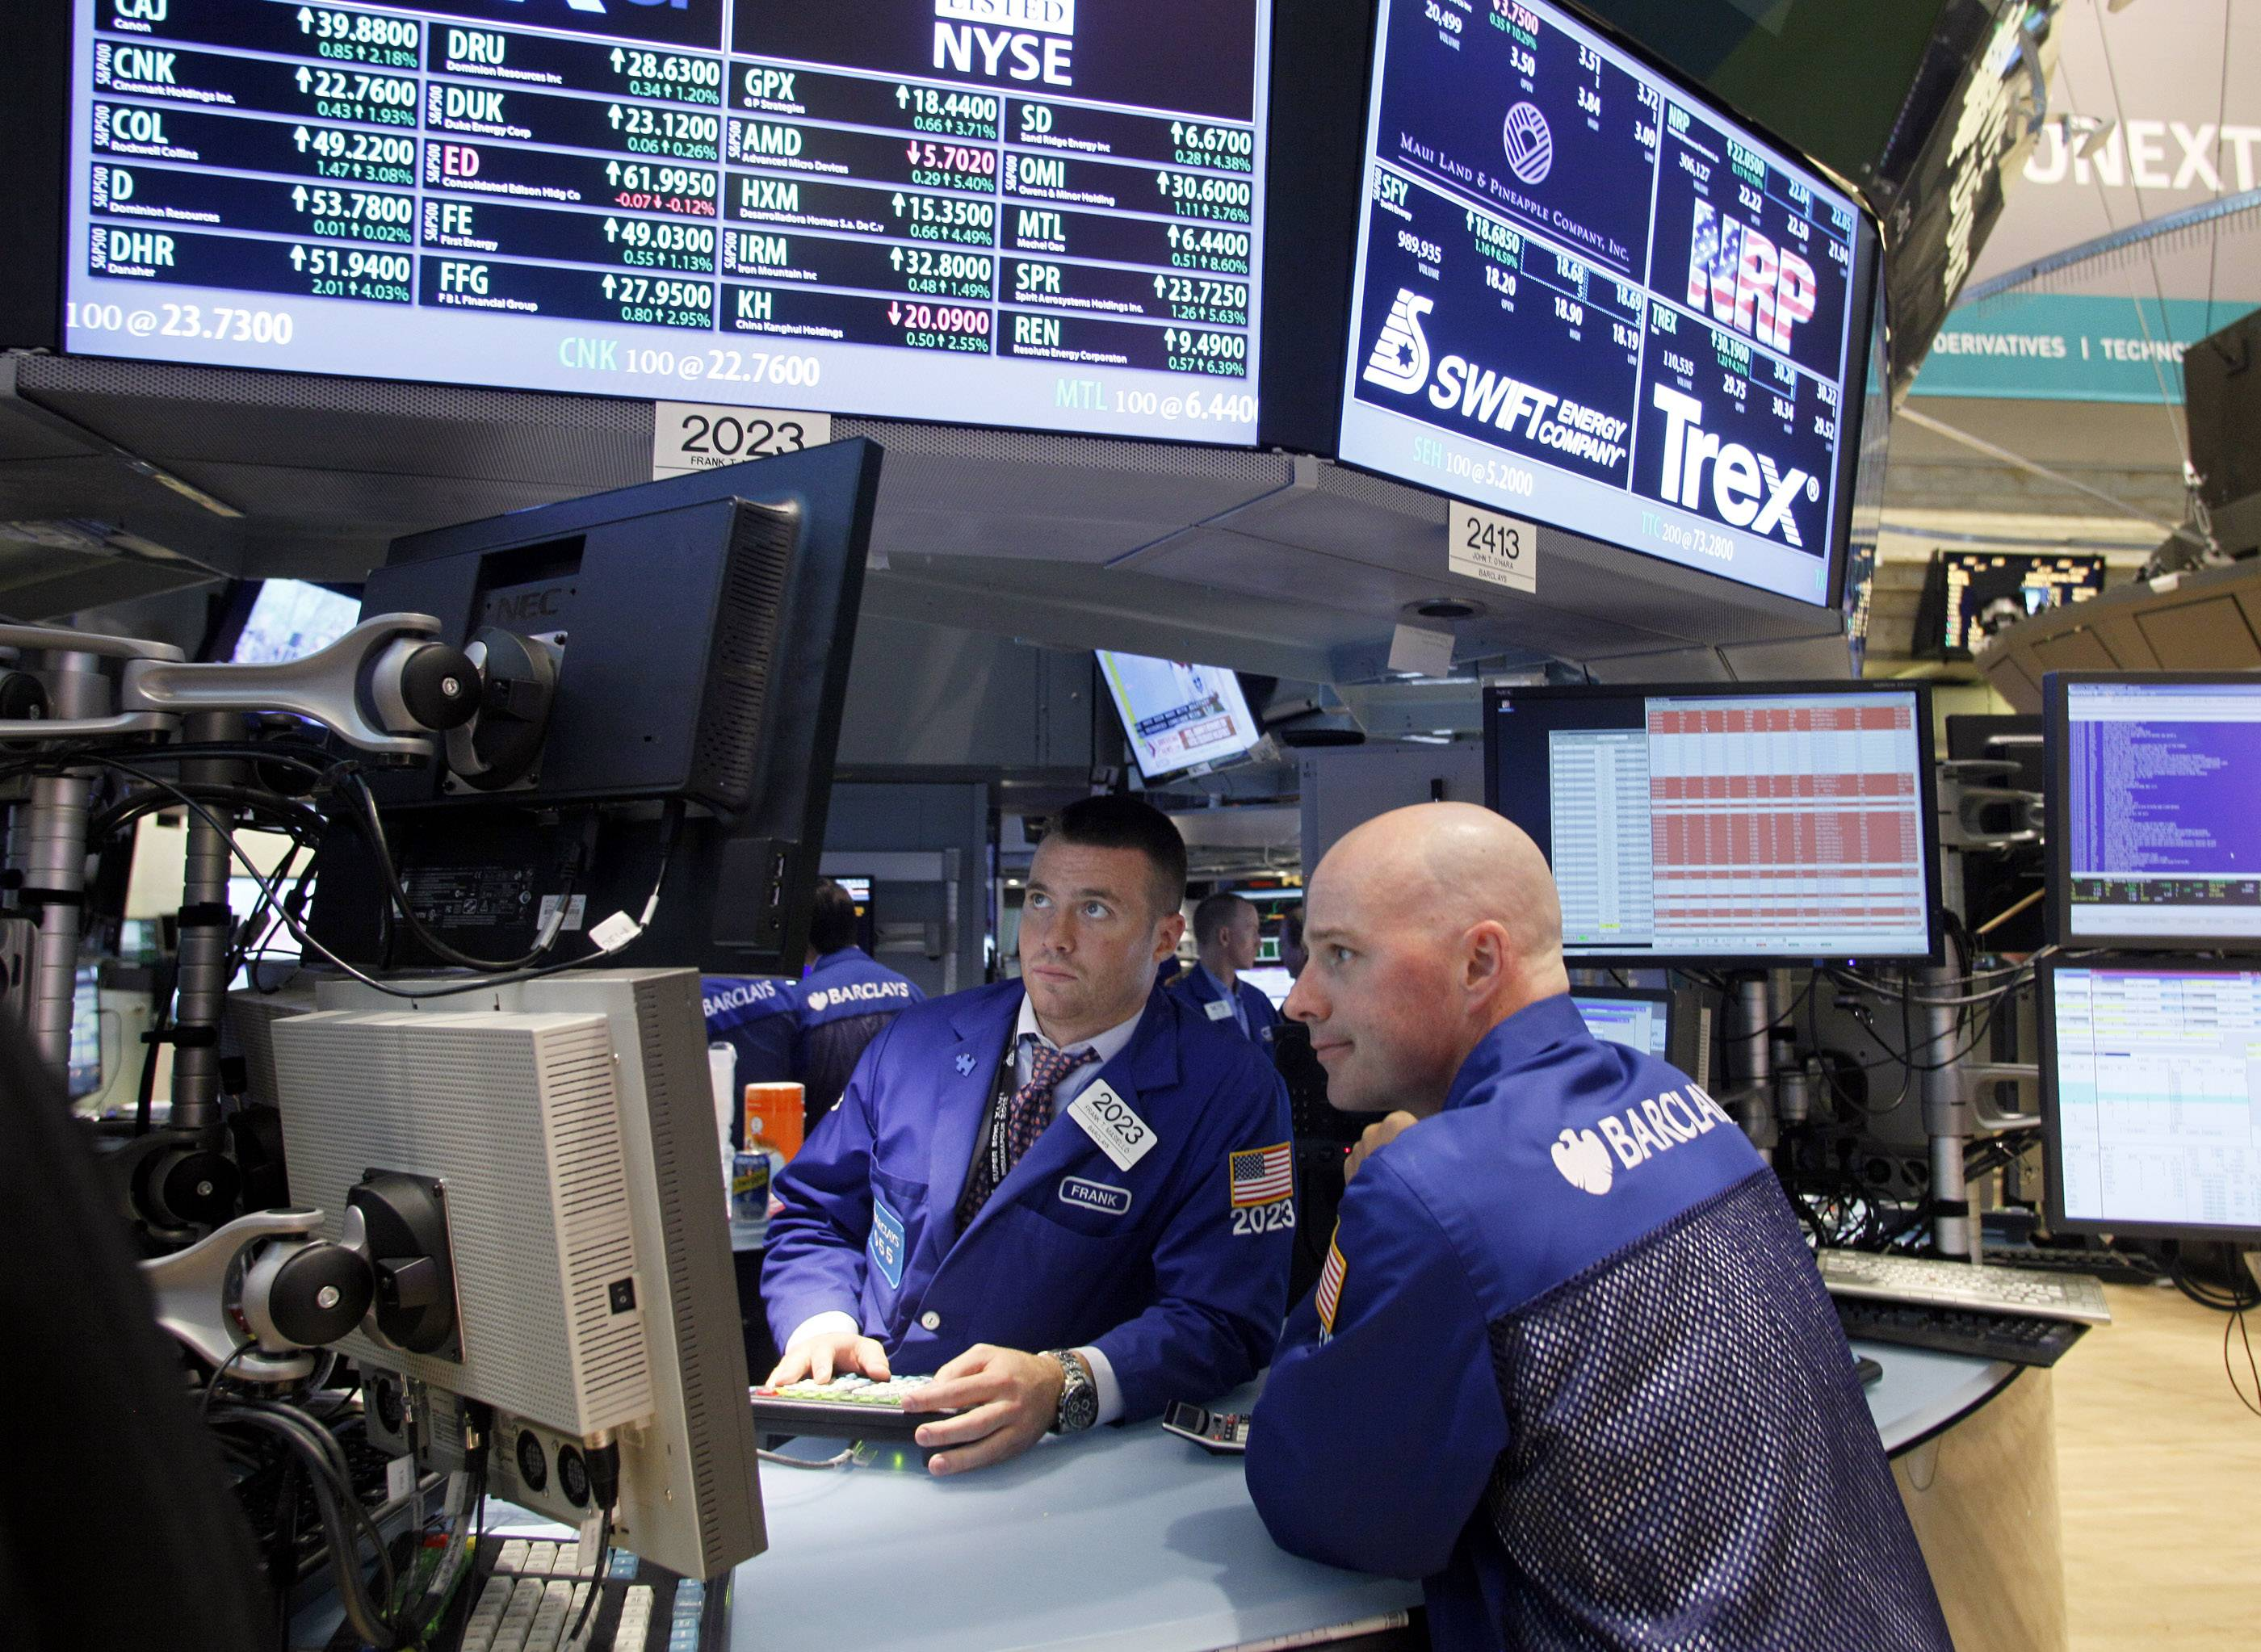 Stocks rose Wednesday, with the Standard & Poor's 500 Index capping its best three-day rally in two months, as Yahoo earnings topped estimates and industrial production gained more than forecast.